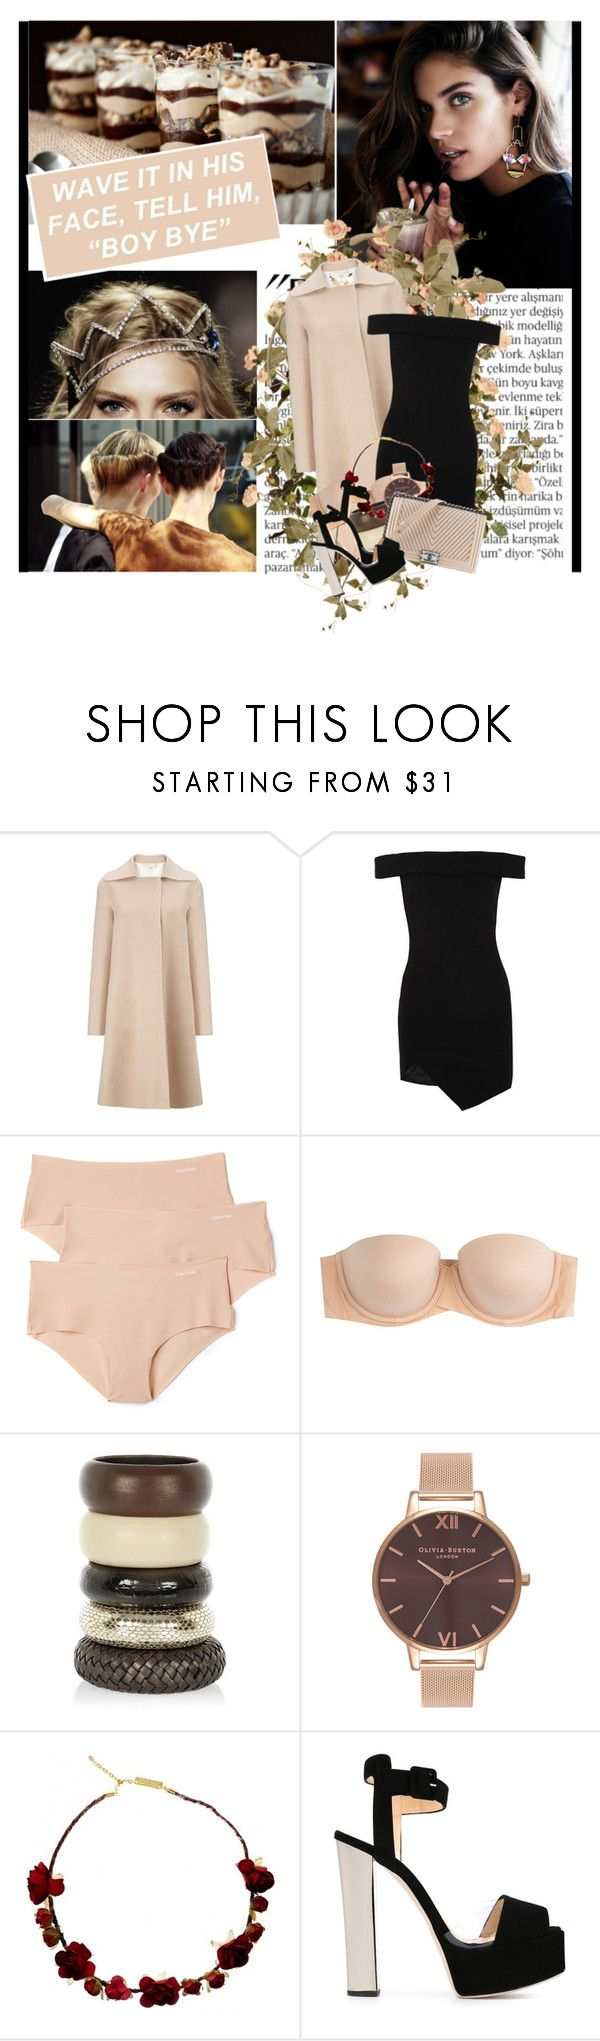 """""""Oh, grant that I can stay the night or one more day inside this life"""" by winfreda ❤ liked on Polyvore featuring Balmain, MANTU, Elizabeth and James, Calvin Klein Underwear, SPANX, River Island, Olivia Burton, Chanel and Giuseppe Zanotti"""